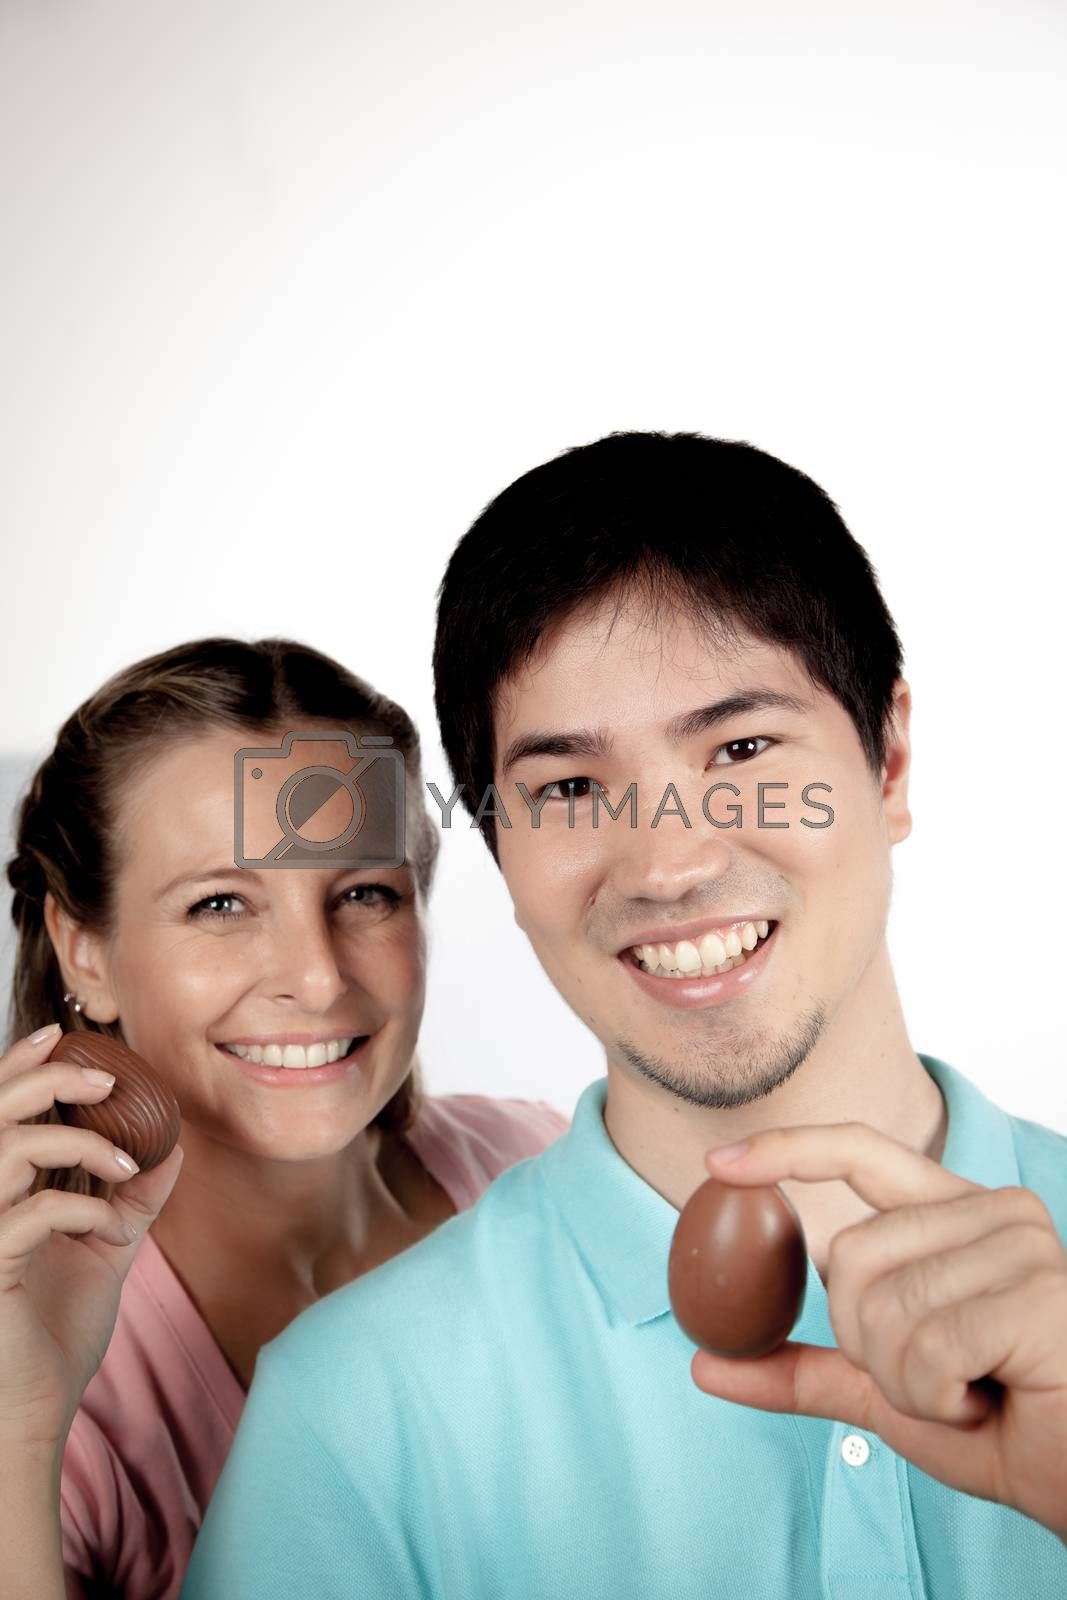 20-25, asian, background, caucasian, Couple, covering, decoration, easter, egg, event, felicity, female, giving, hand, handmade, happy, holding, hope, human, life, love, man, model, old, one, palm, people, person, portrait, property, releases, seasonal, show, showing, smile, smiling, studio, surprise, symbol, together, traditional, white, woman, years, young